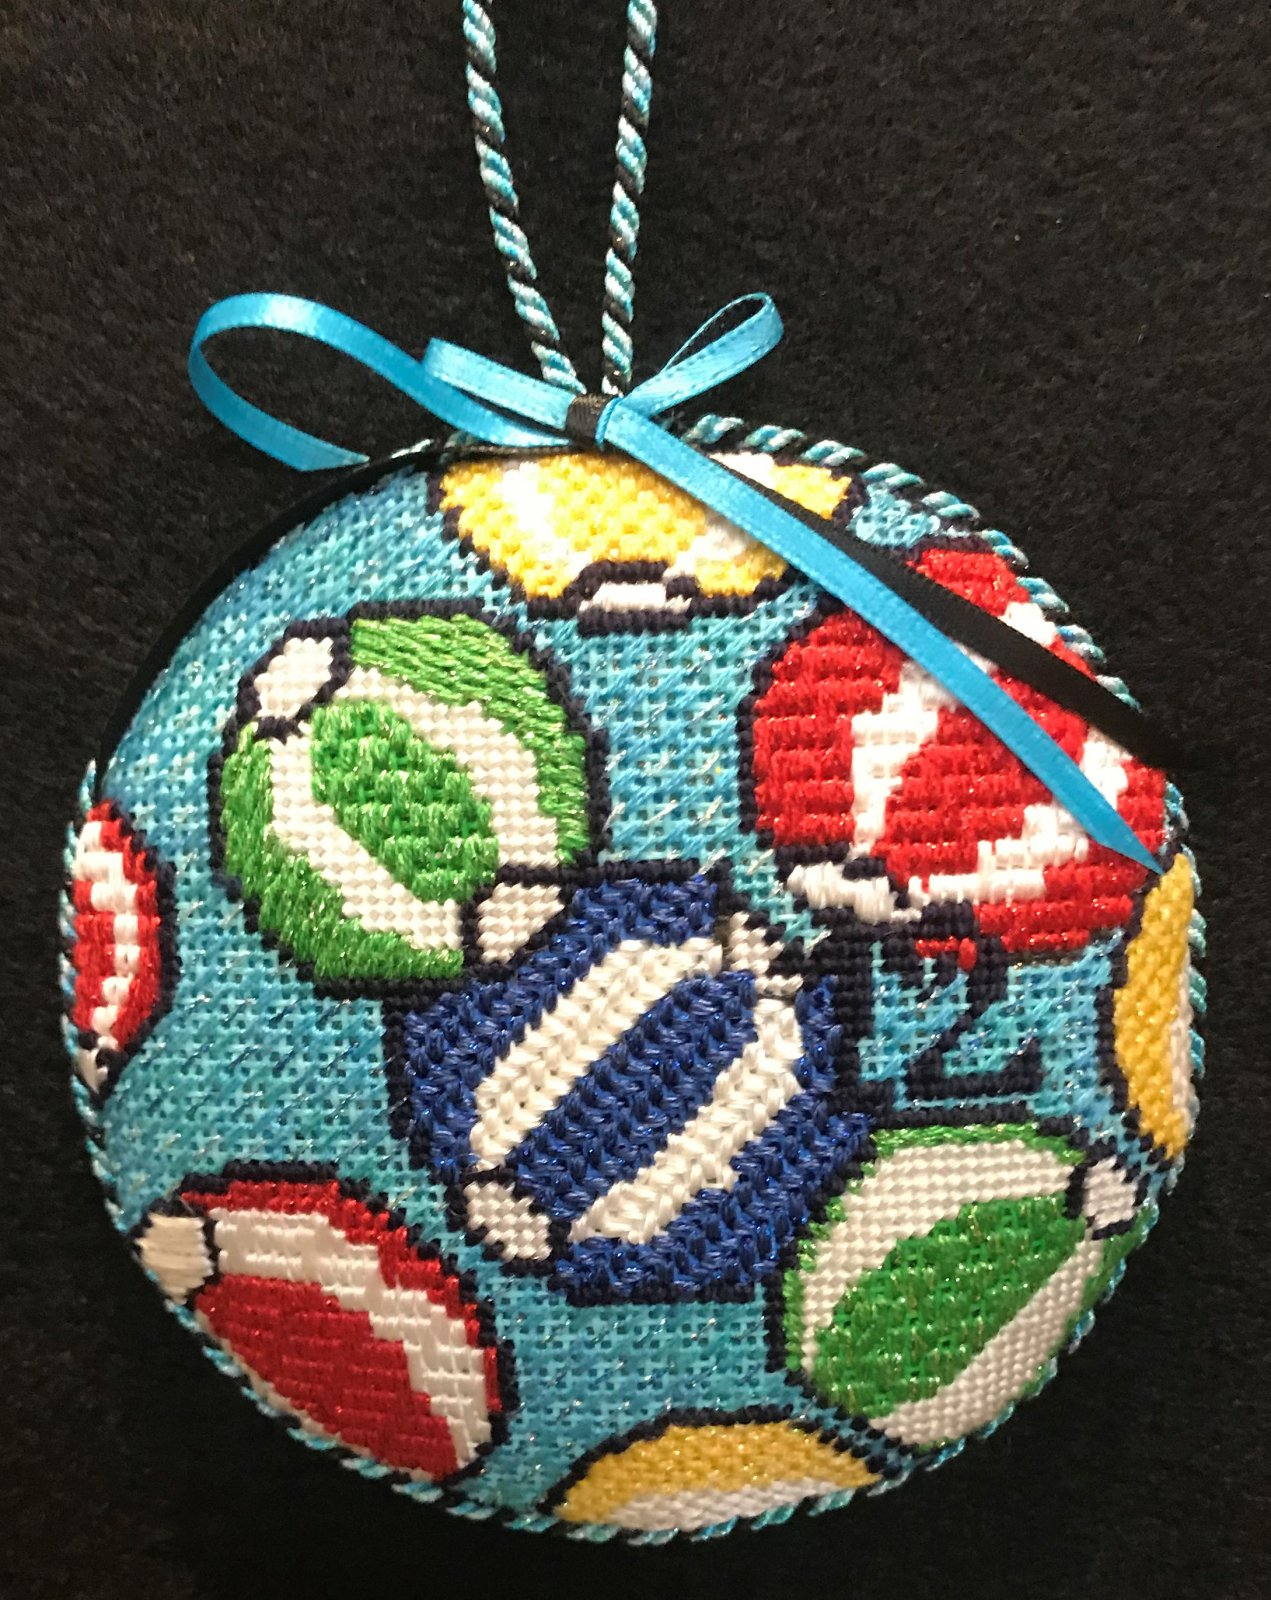 #12 Beachballs Ornament - stitched by Stacey G.